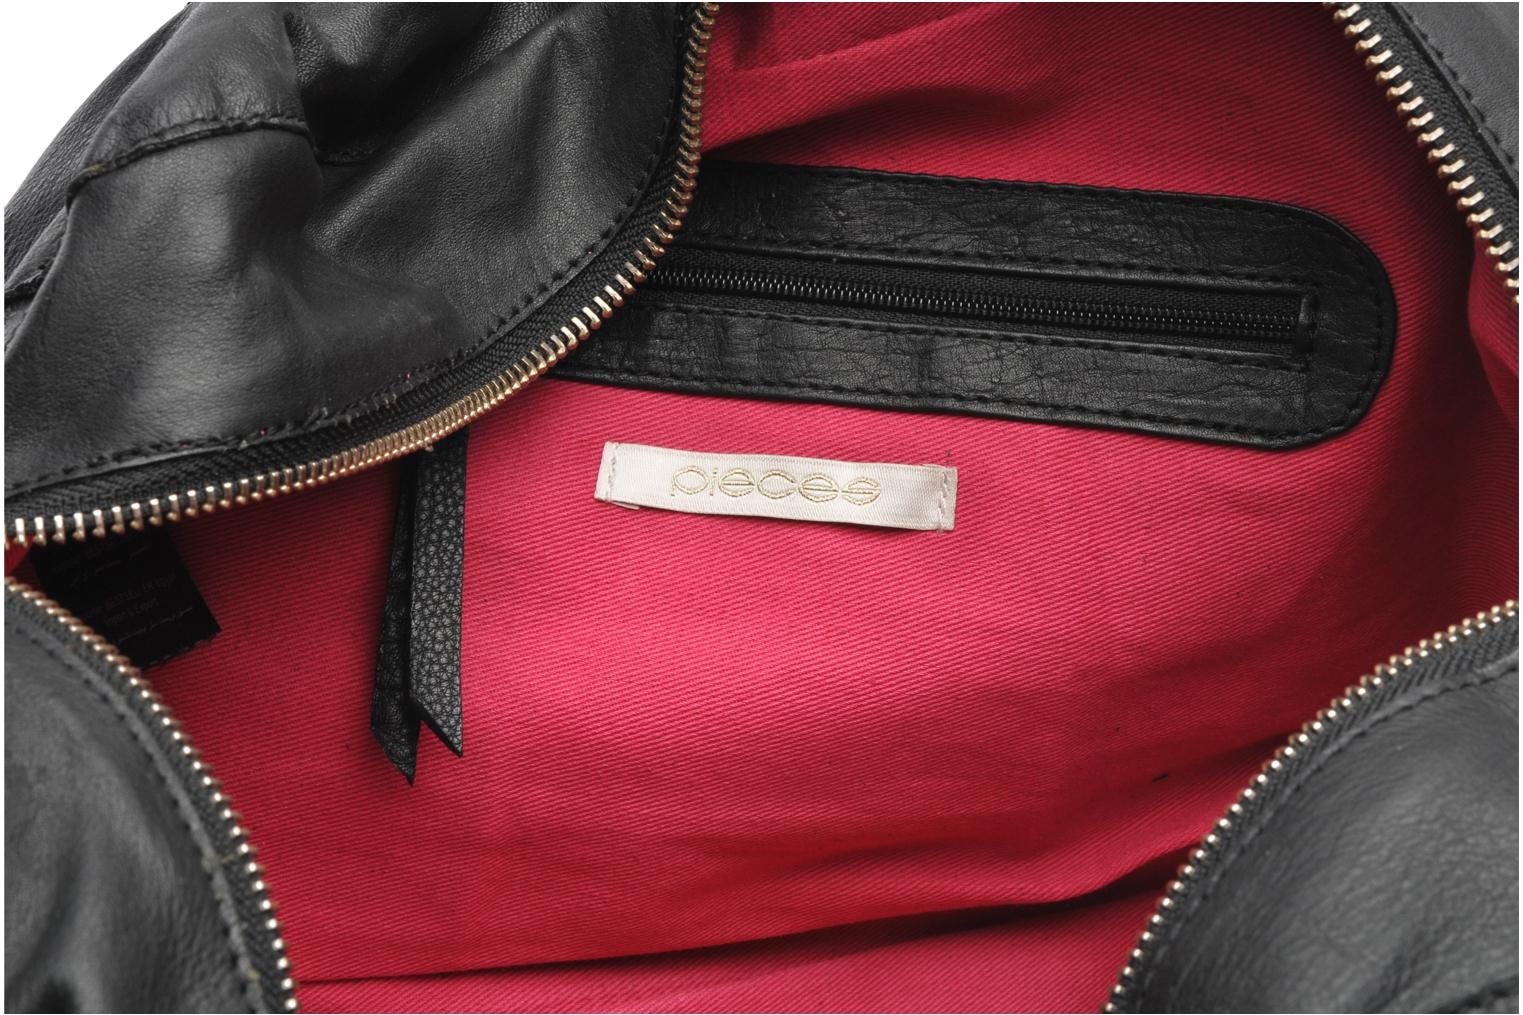 Handbags Pieces Totally Royal leather Small bag Black back view